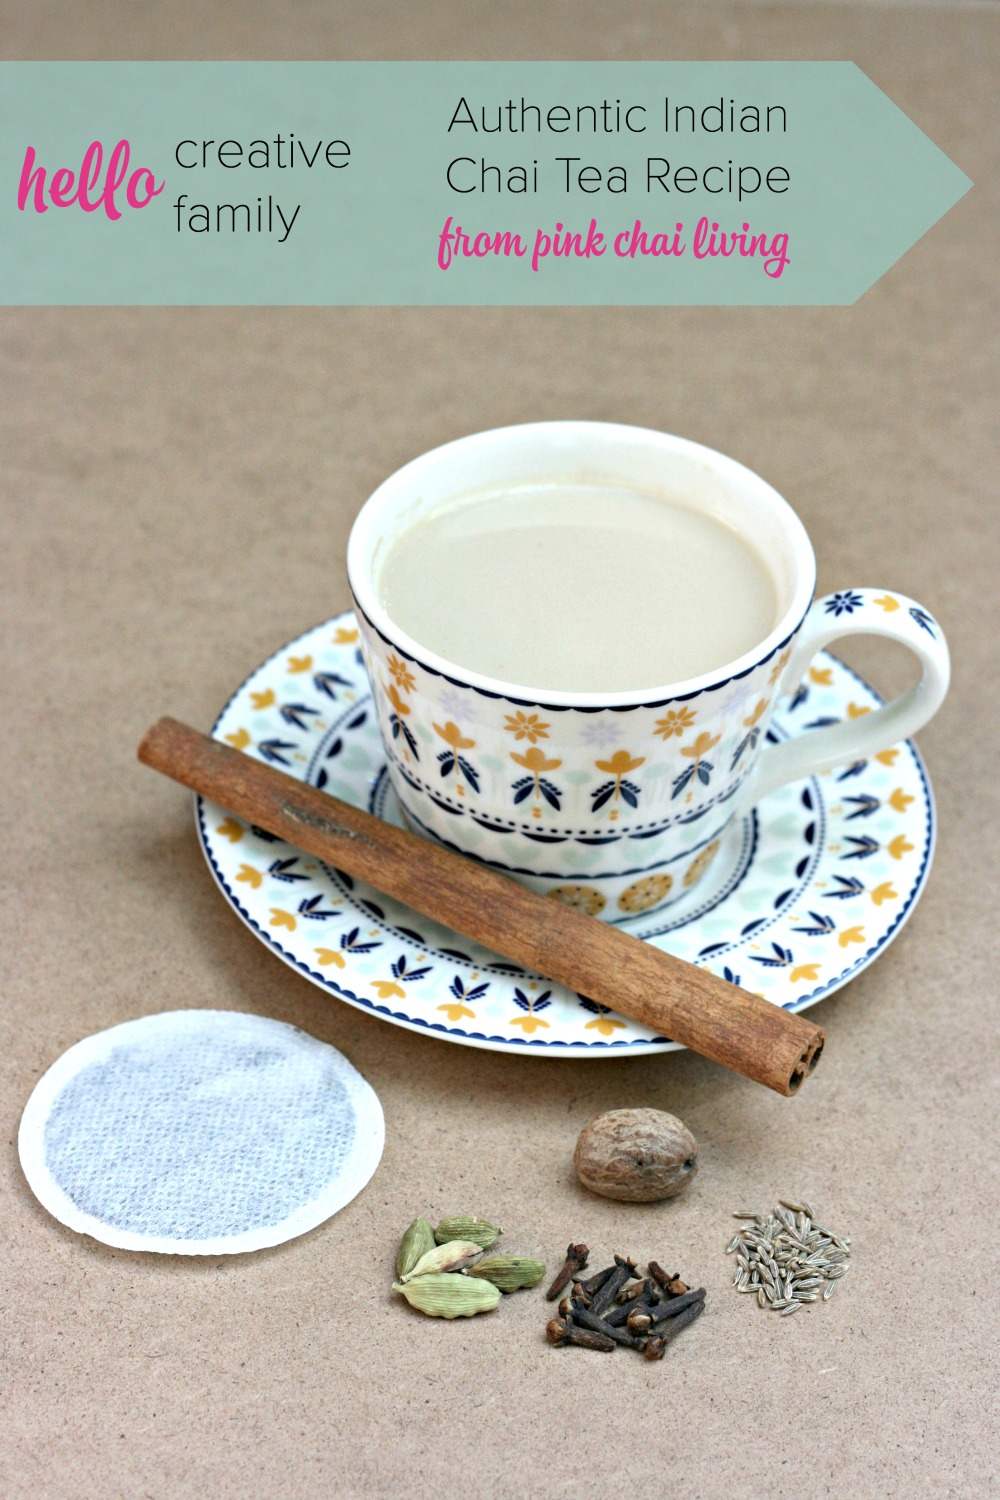 Looking for the perfect cup of chai tea Check out this authentic North India Masala Chai Tea Recipe. It's simple and delicious!